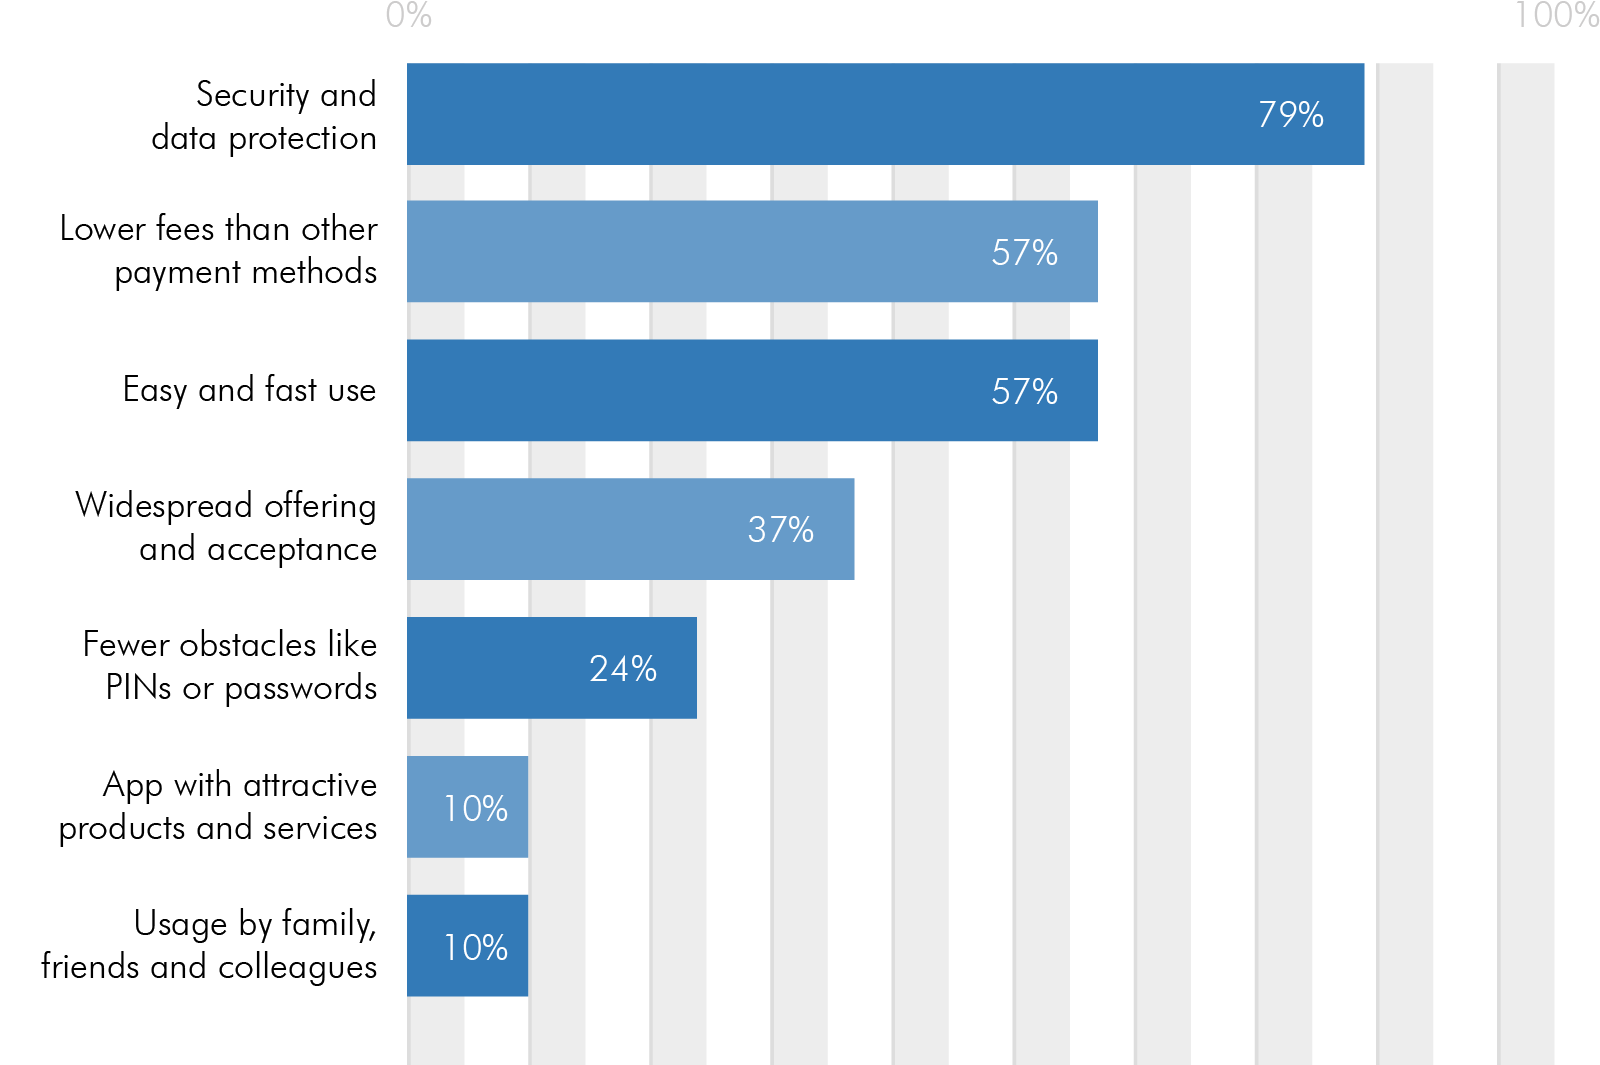 success factors for more mobile payment usage